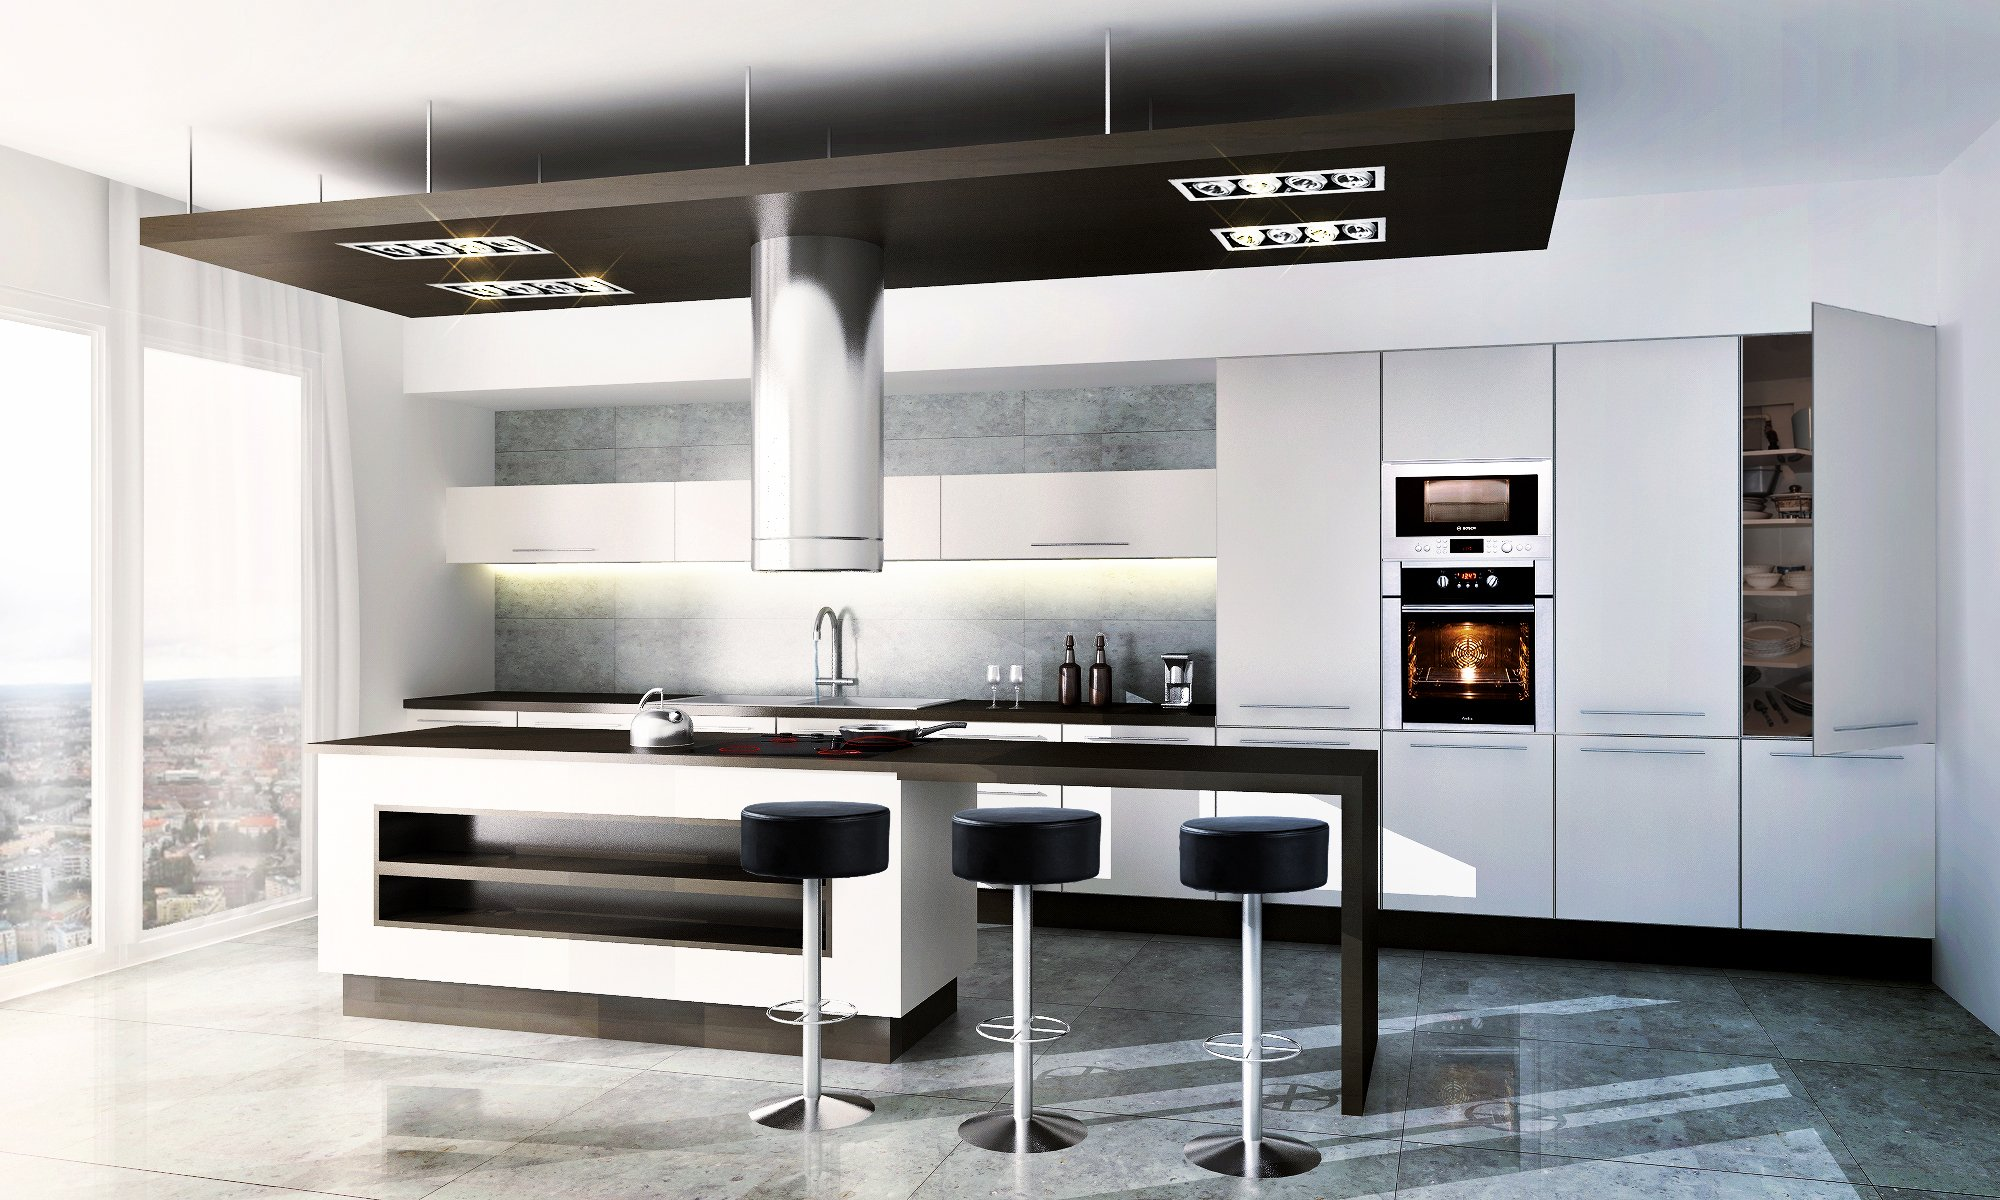 design your kitchen in 3d vizblog with visualisations free 3d models free 282